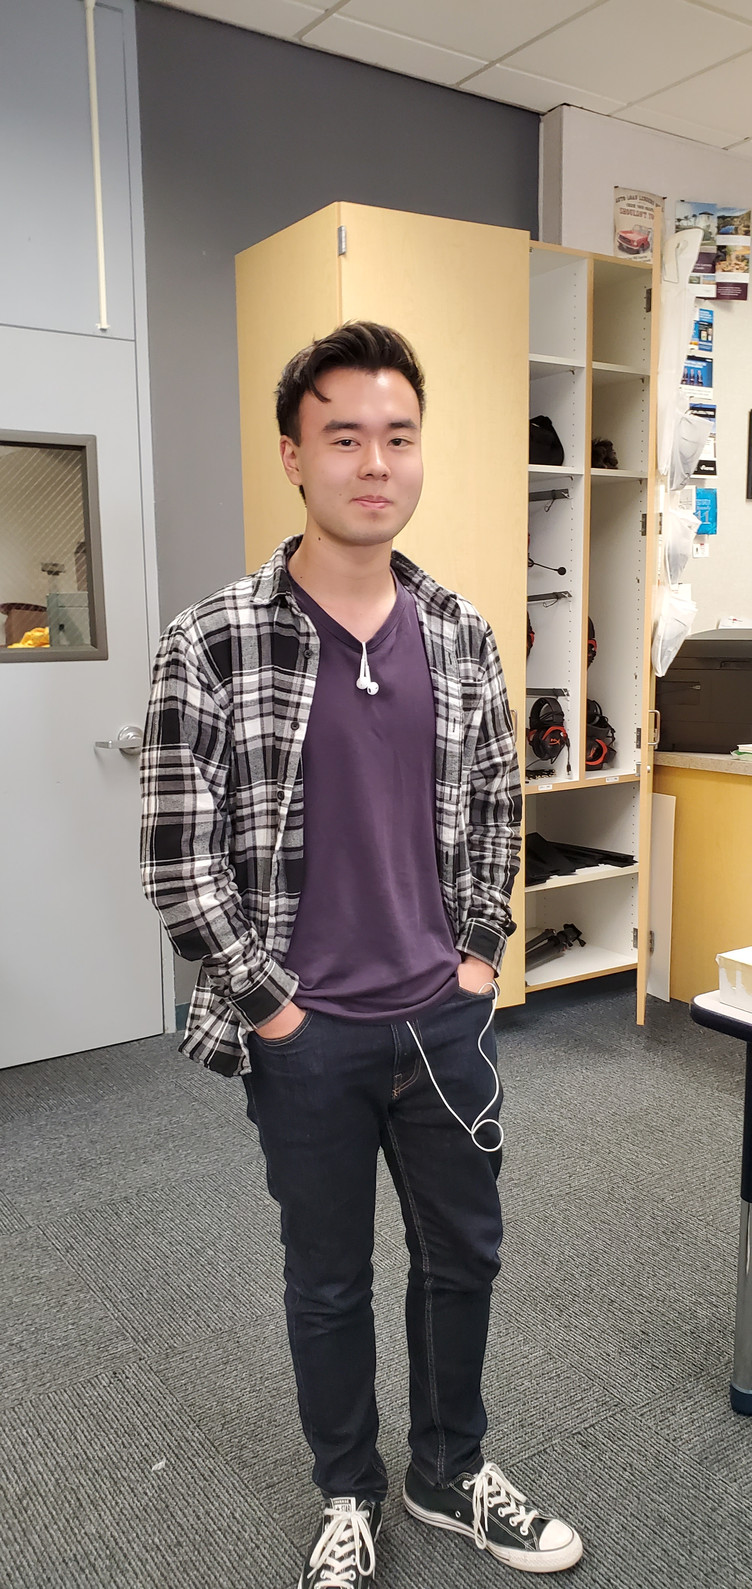 Daniel Kim is the DMAA Student of the Week for October 13-19